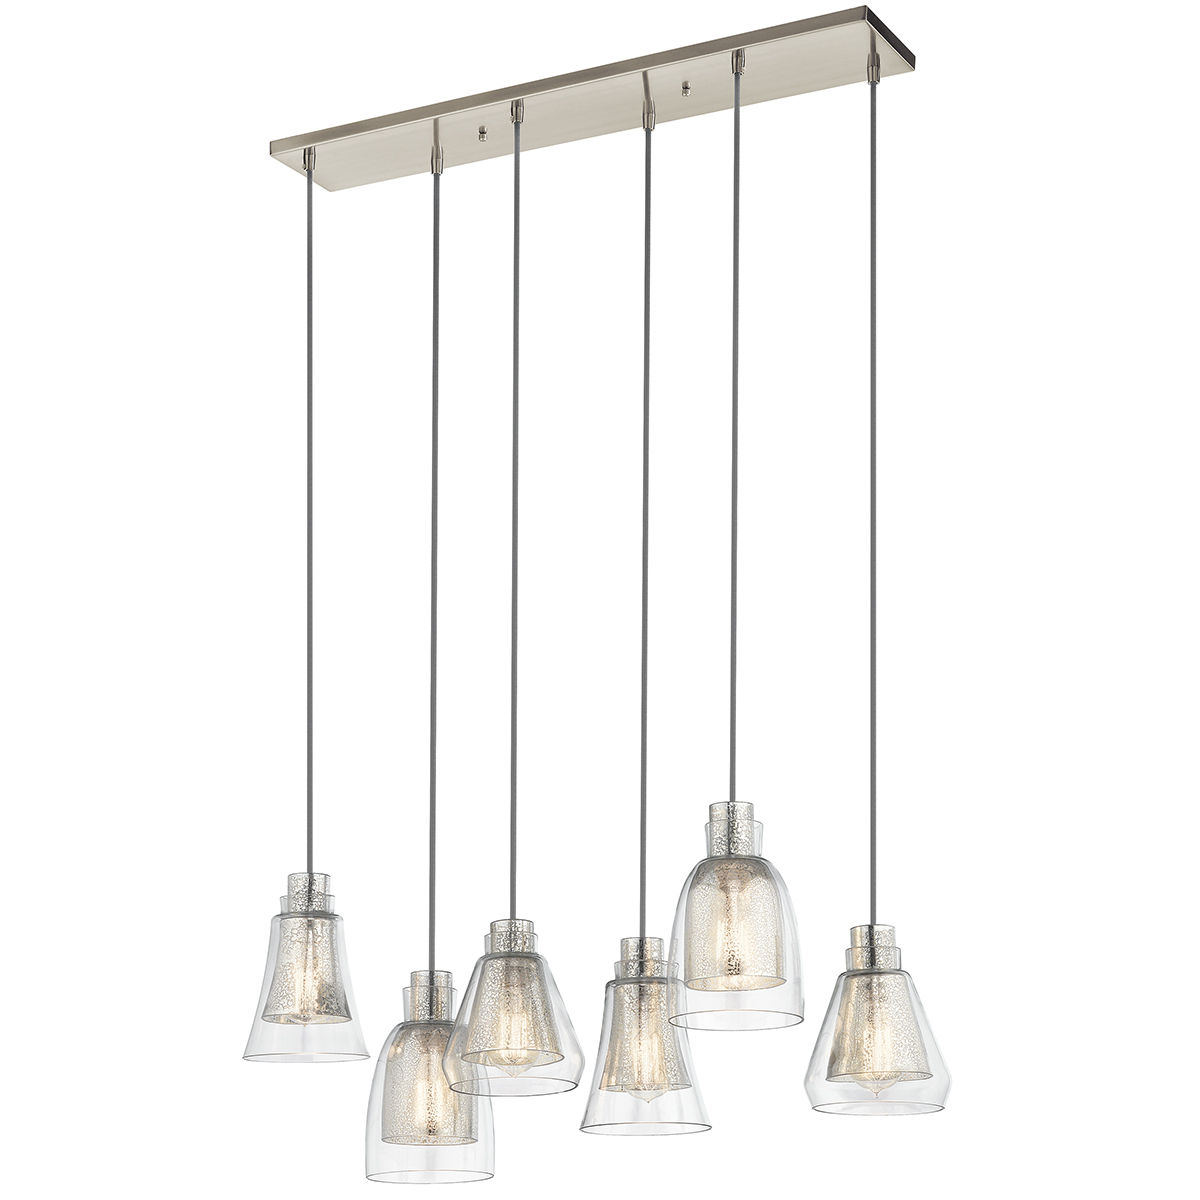 Kichler Brushed Nickel Evie Linear Pendant With Lights